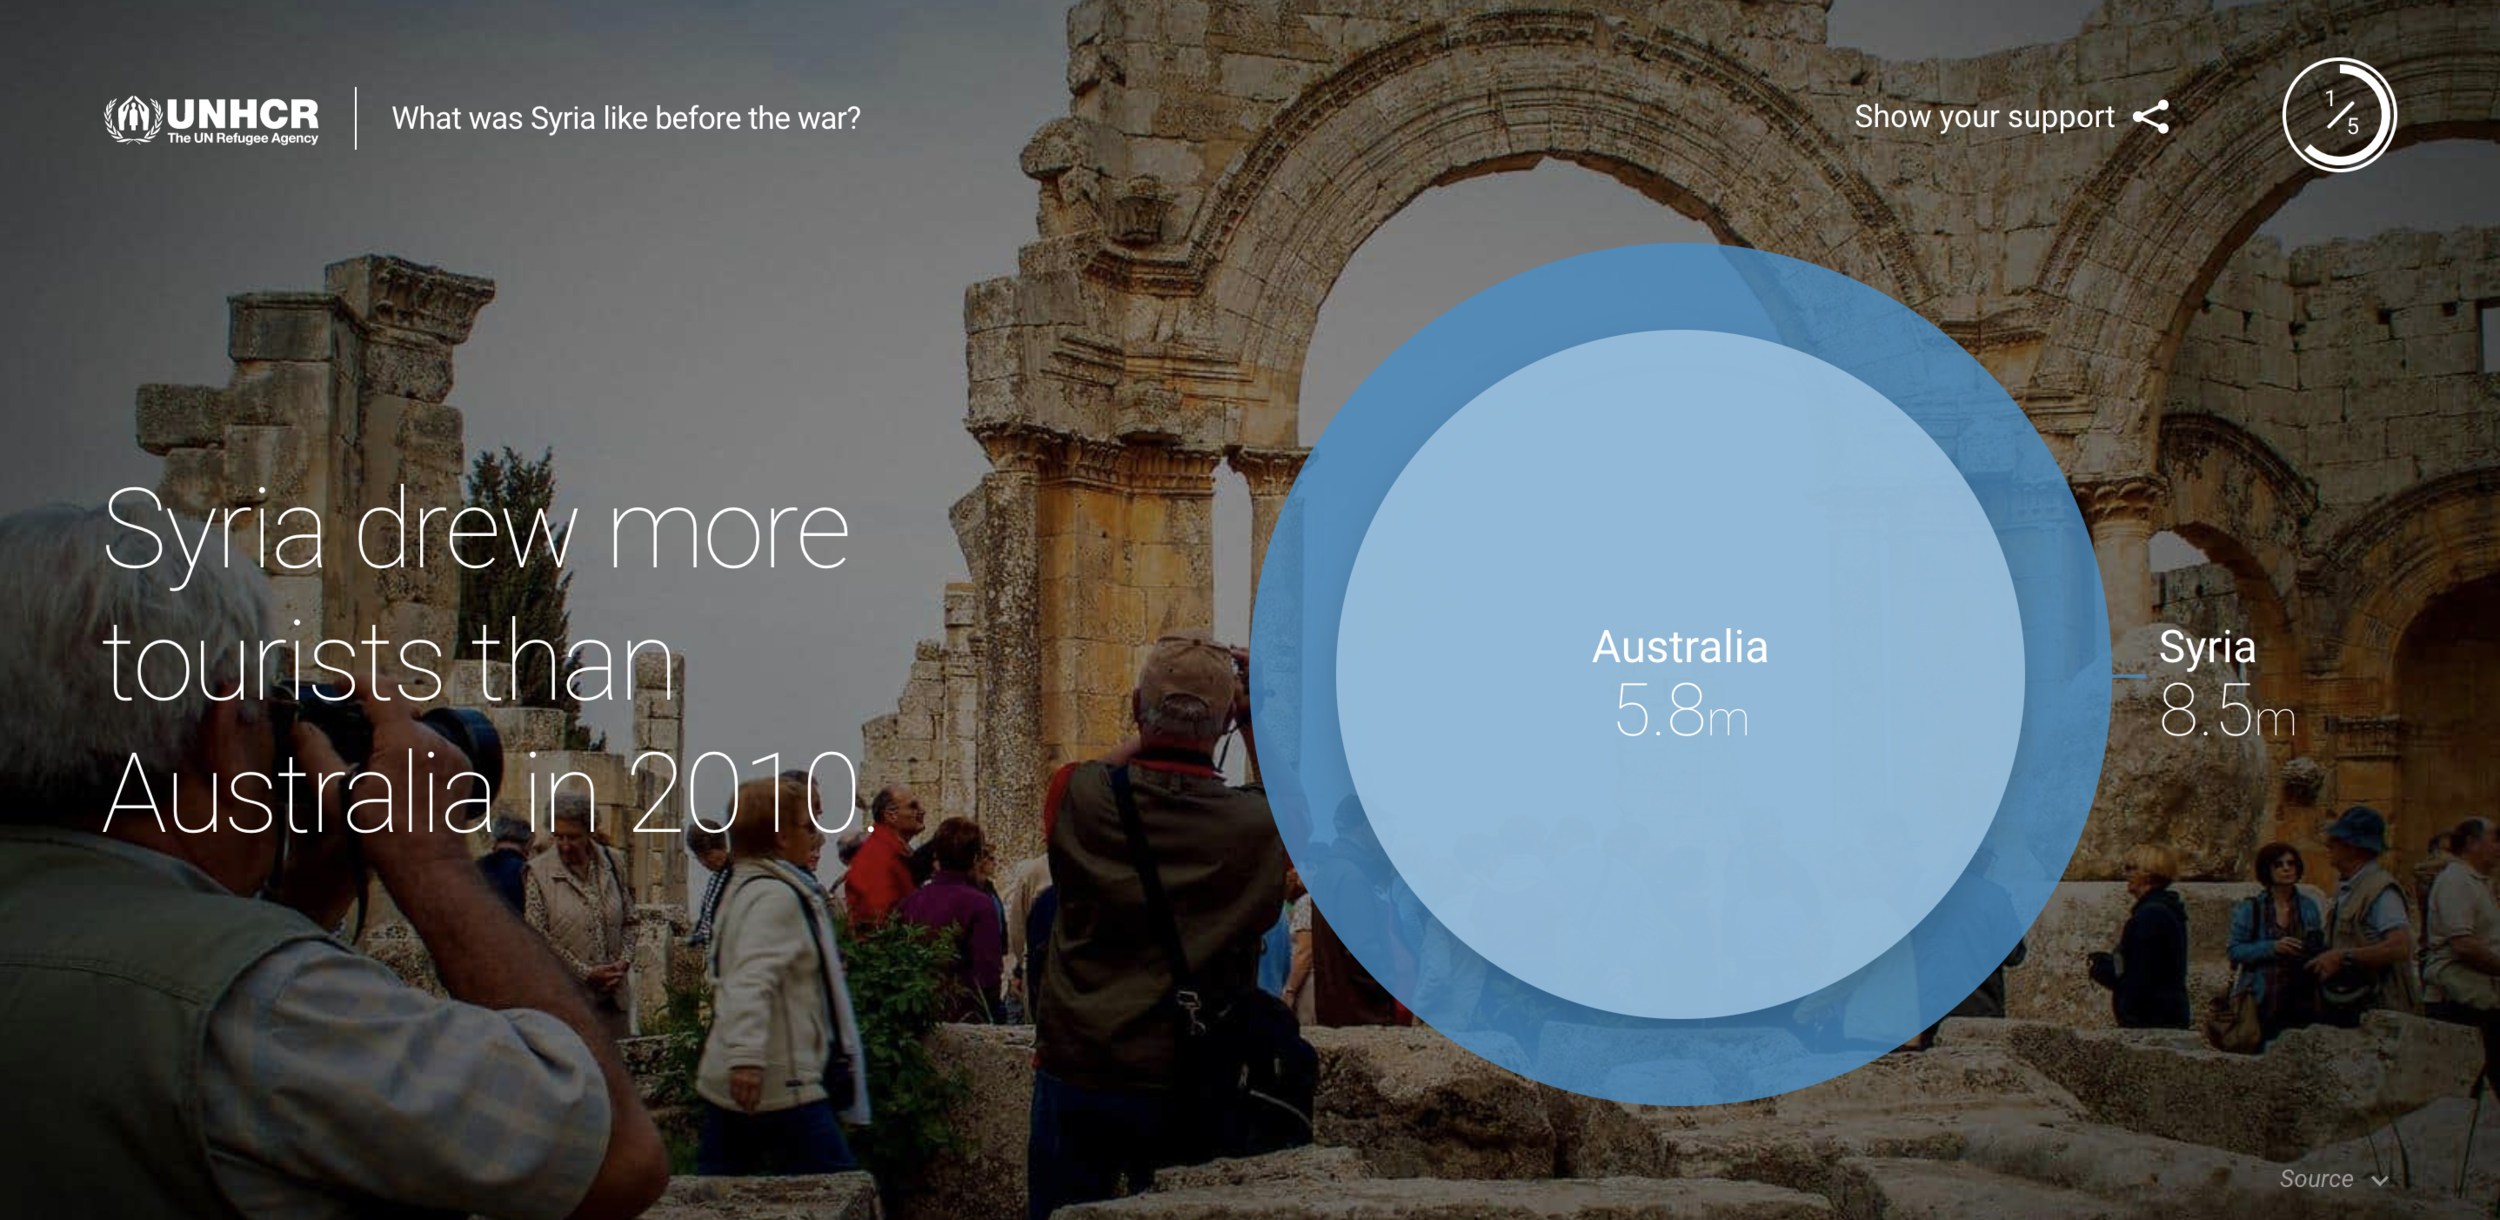 Compelling, relatable insights.  With the help of the UN, we sought to show site visitors how Syria not only had a rich history, but that the crisis devastated a booming economy.